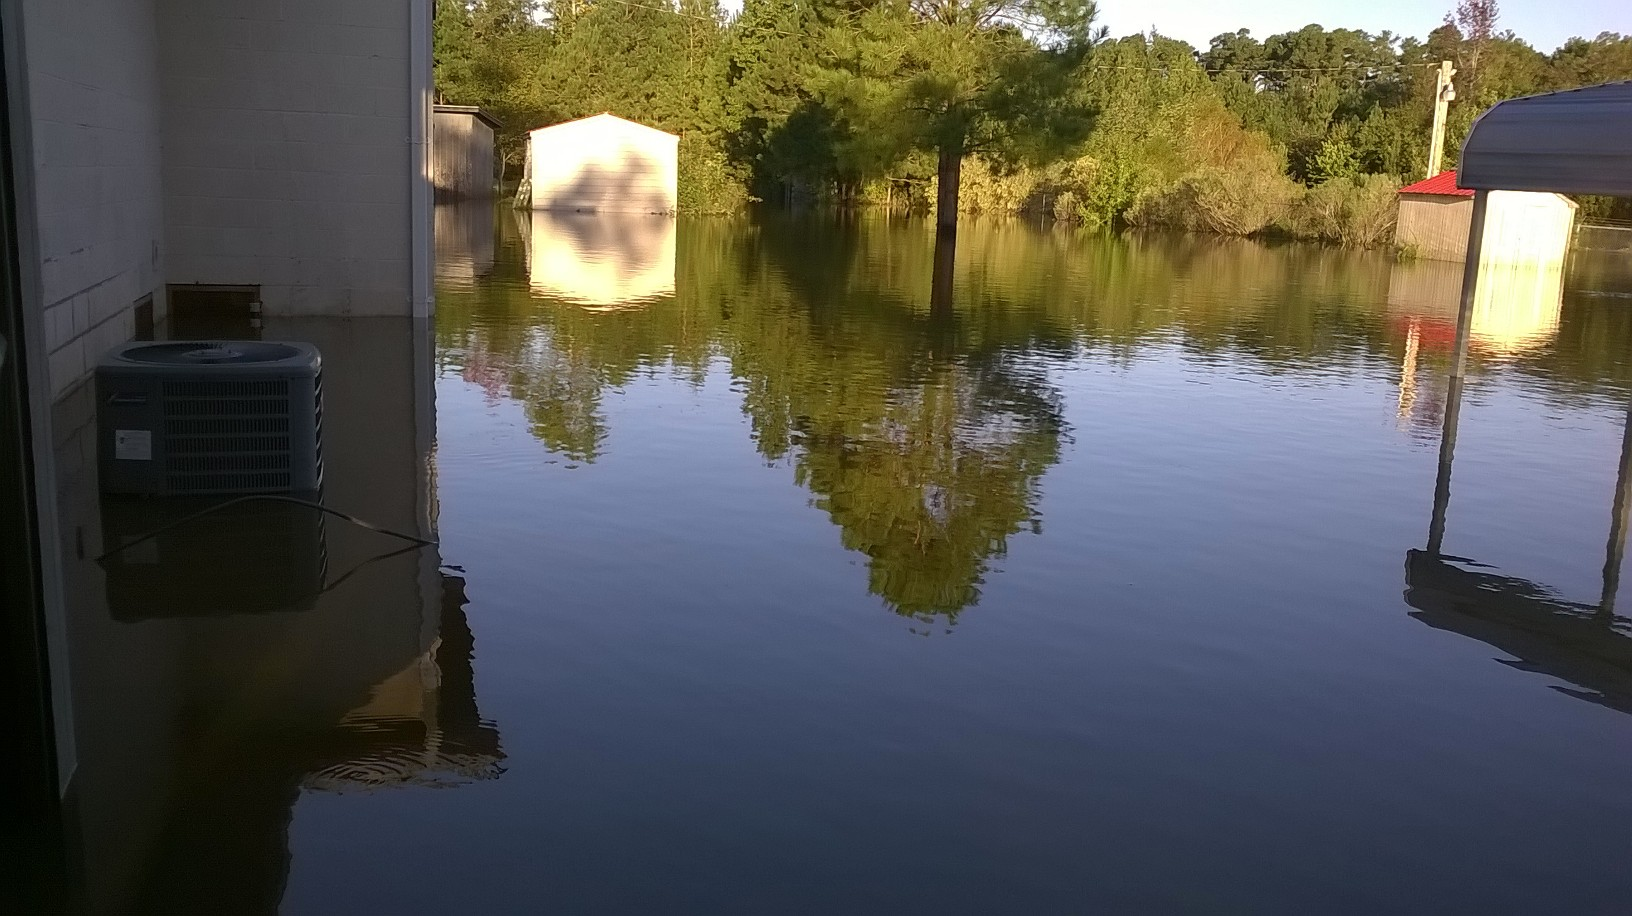 AL Post 230 Flood Image 5